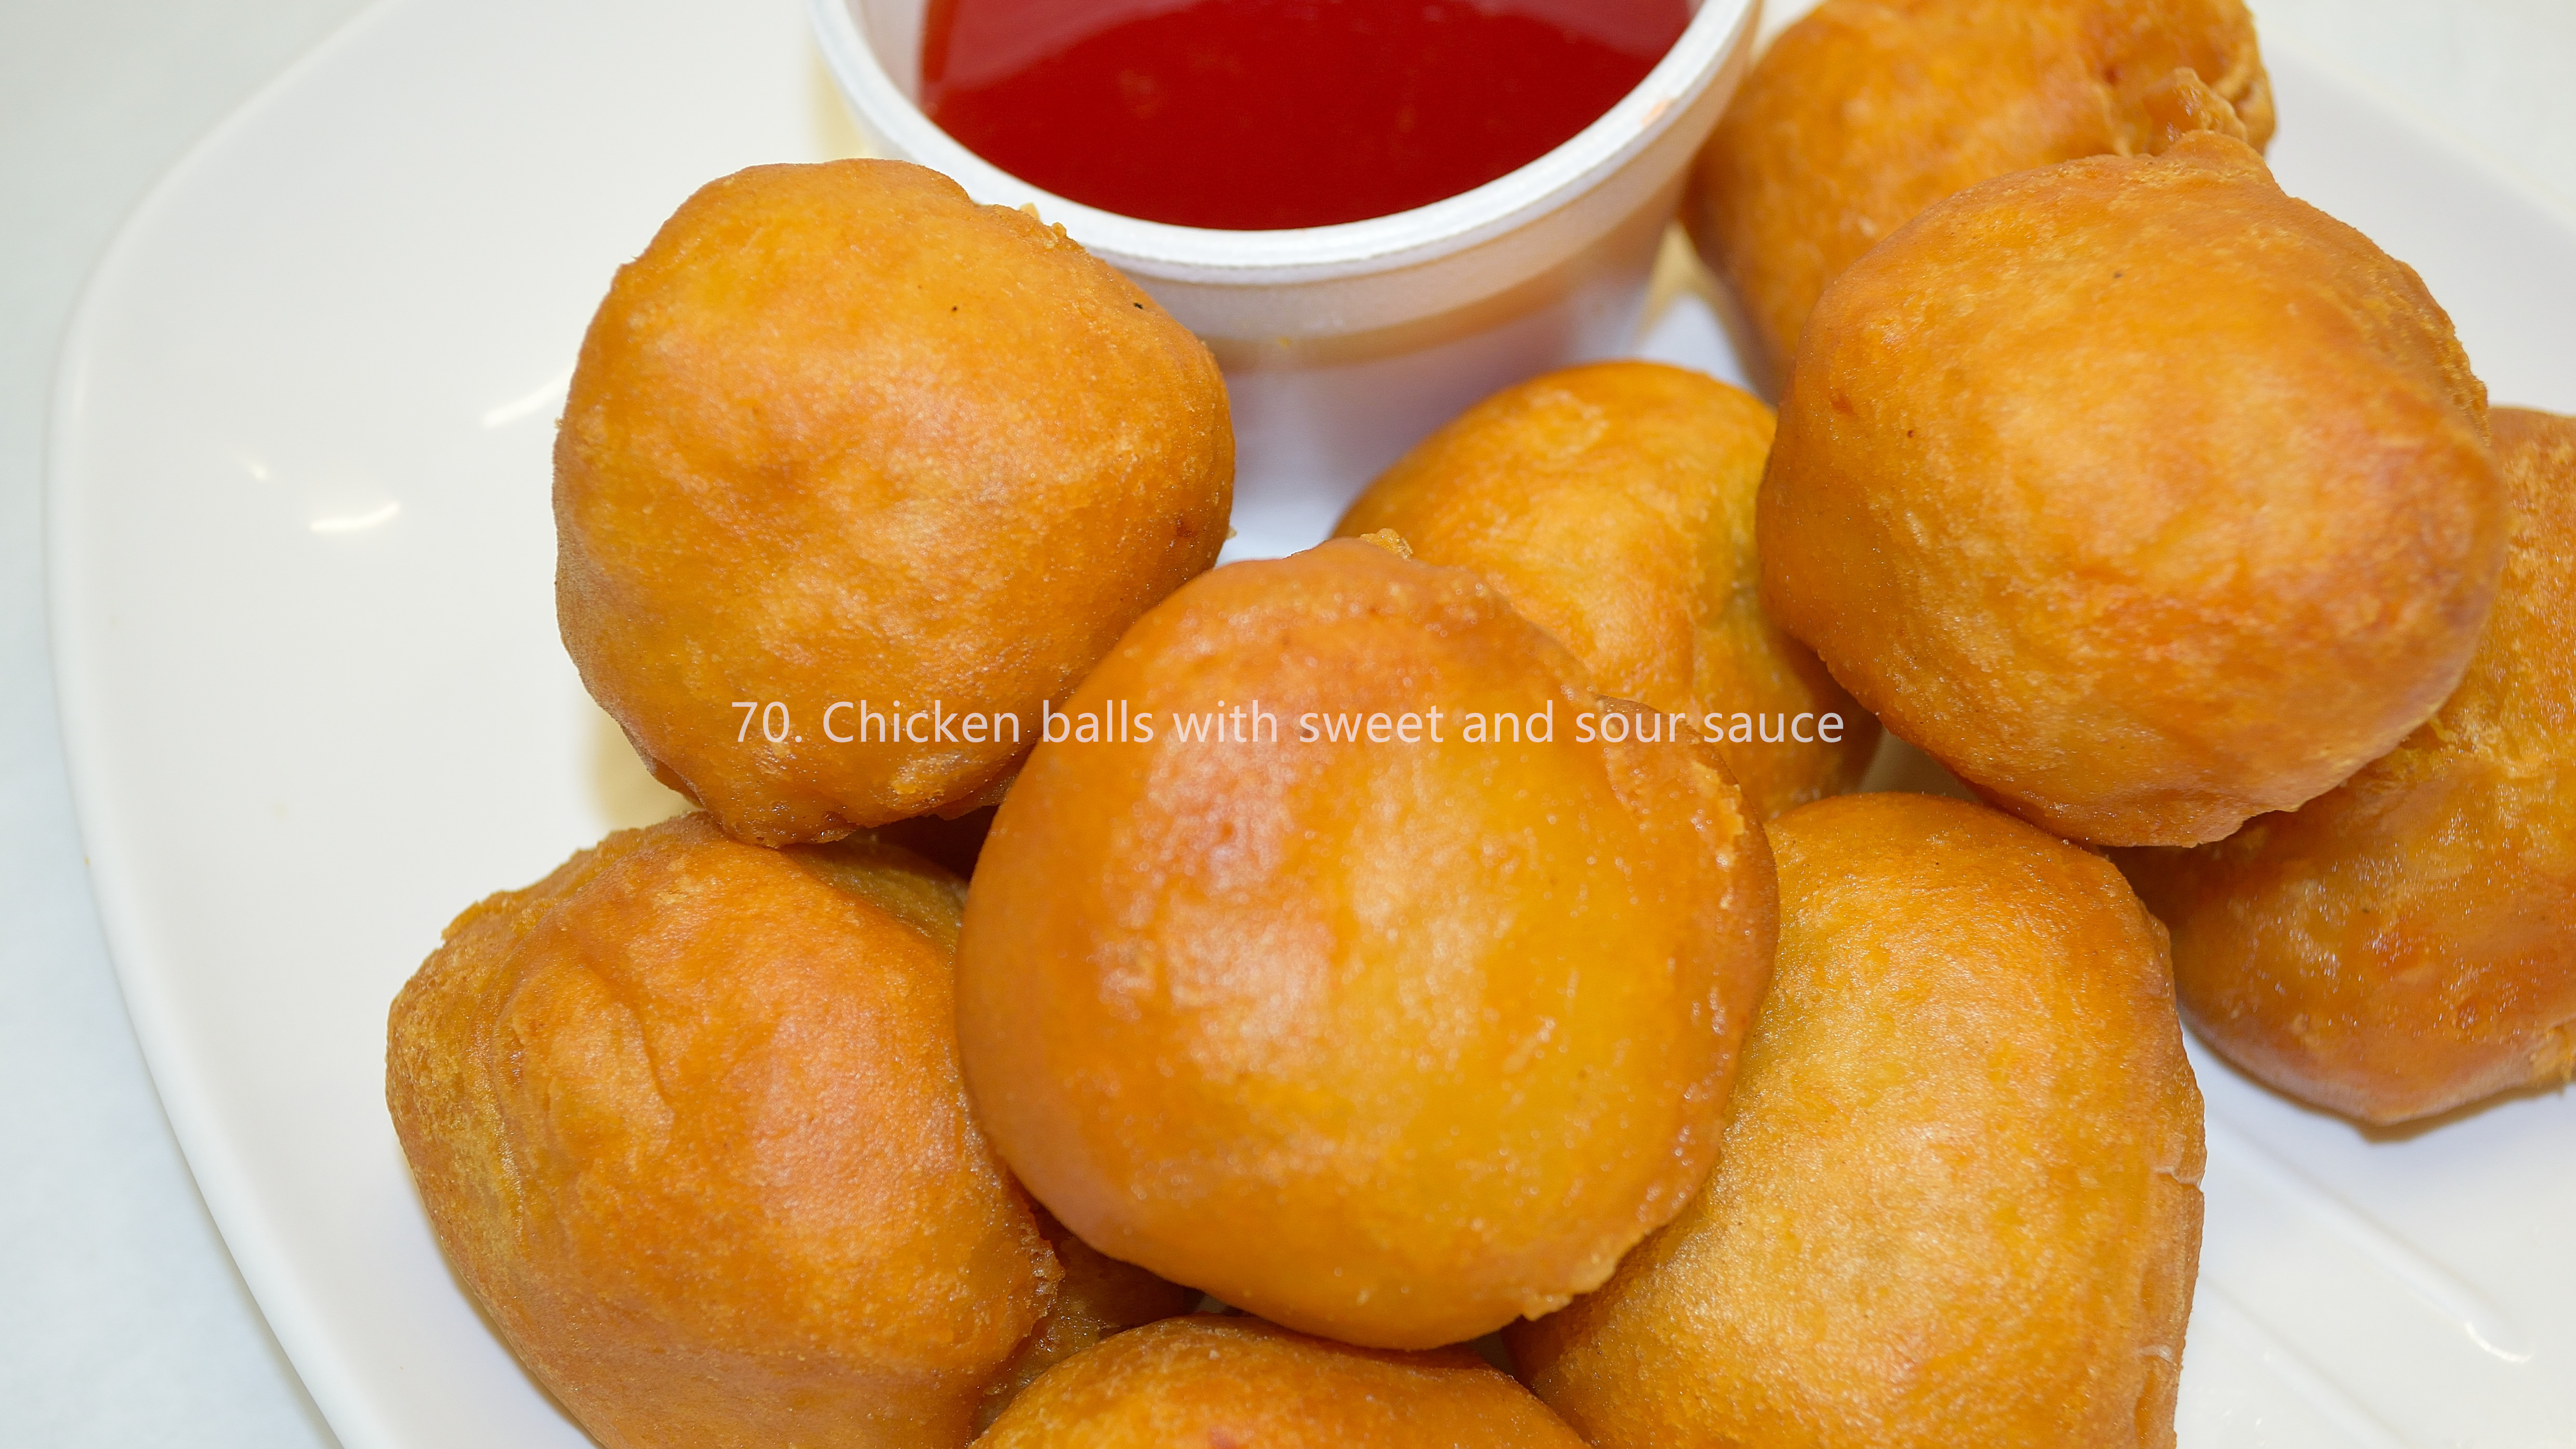 Chicken balls with sweet and sour sauce